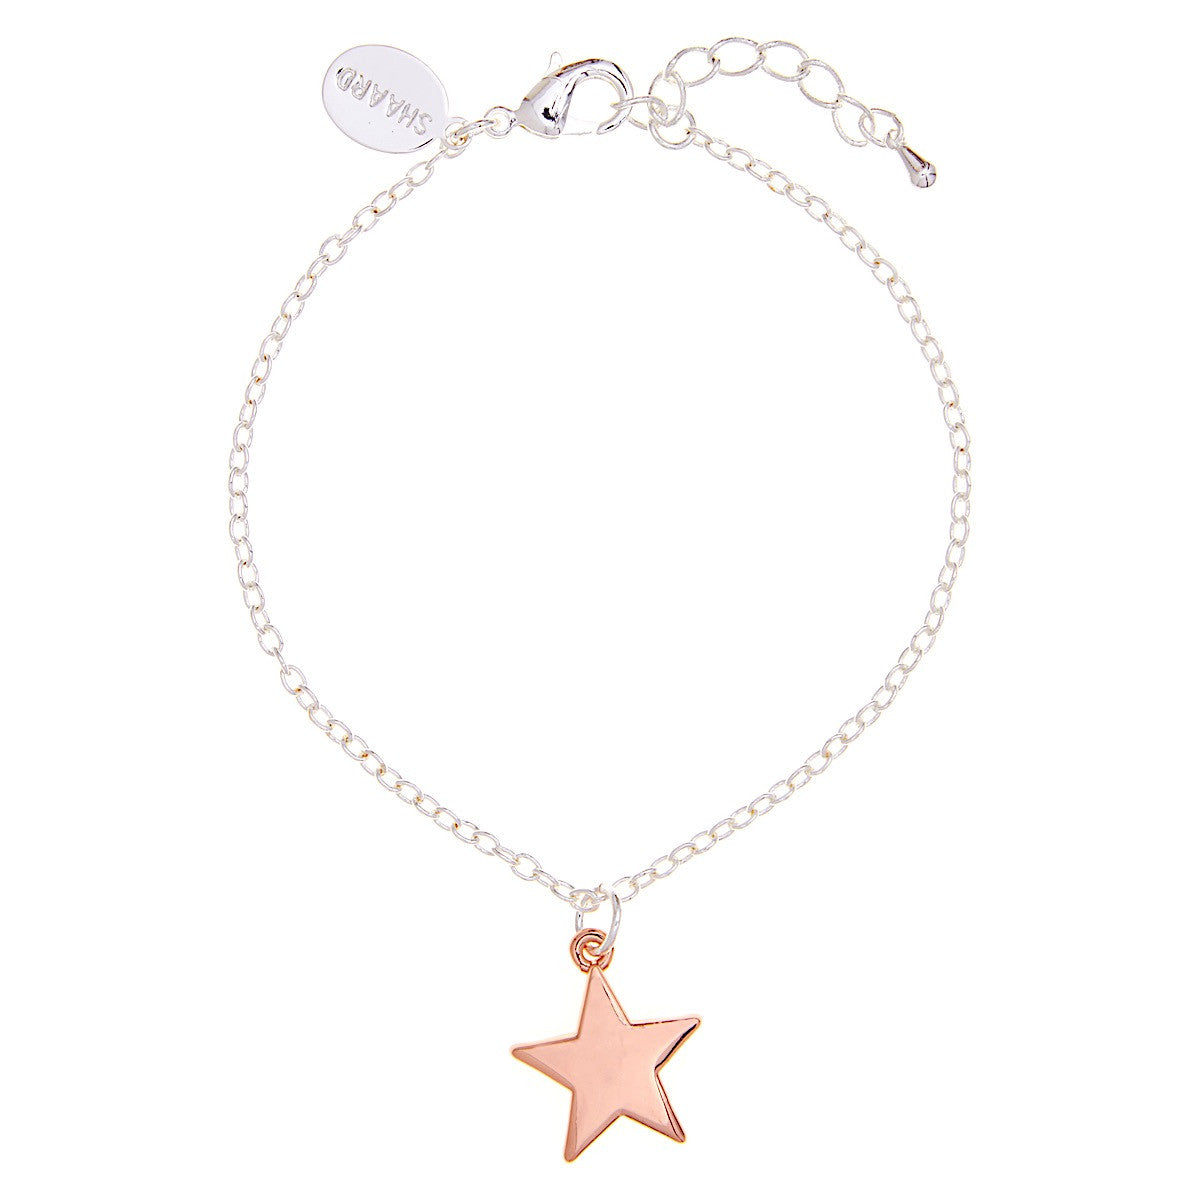 RG Star Bracelet Shaard | More Than Just at Gift | Narborough Hall